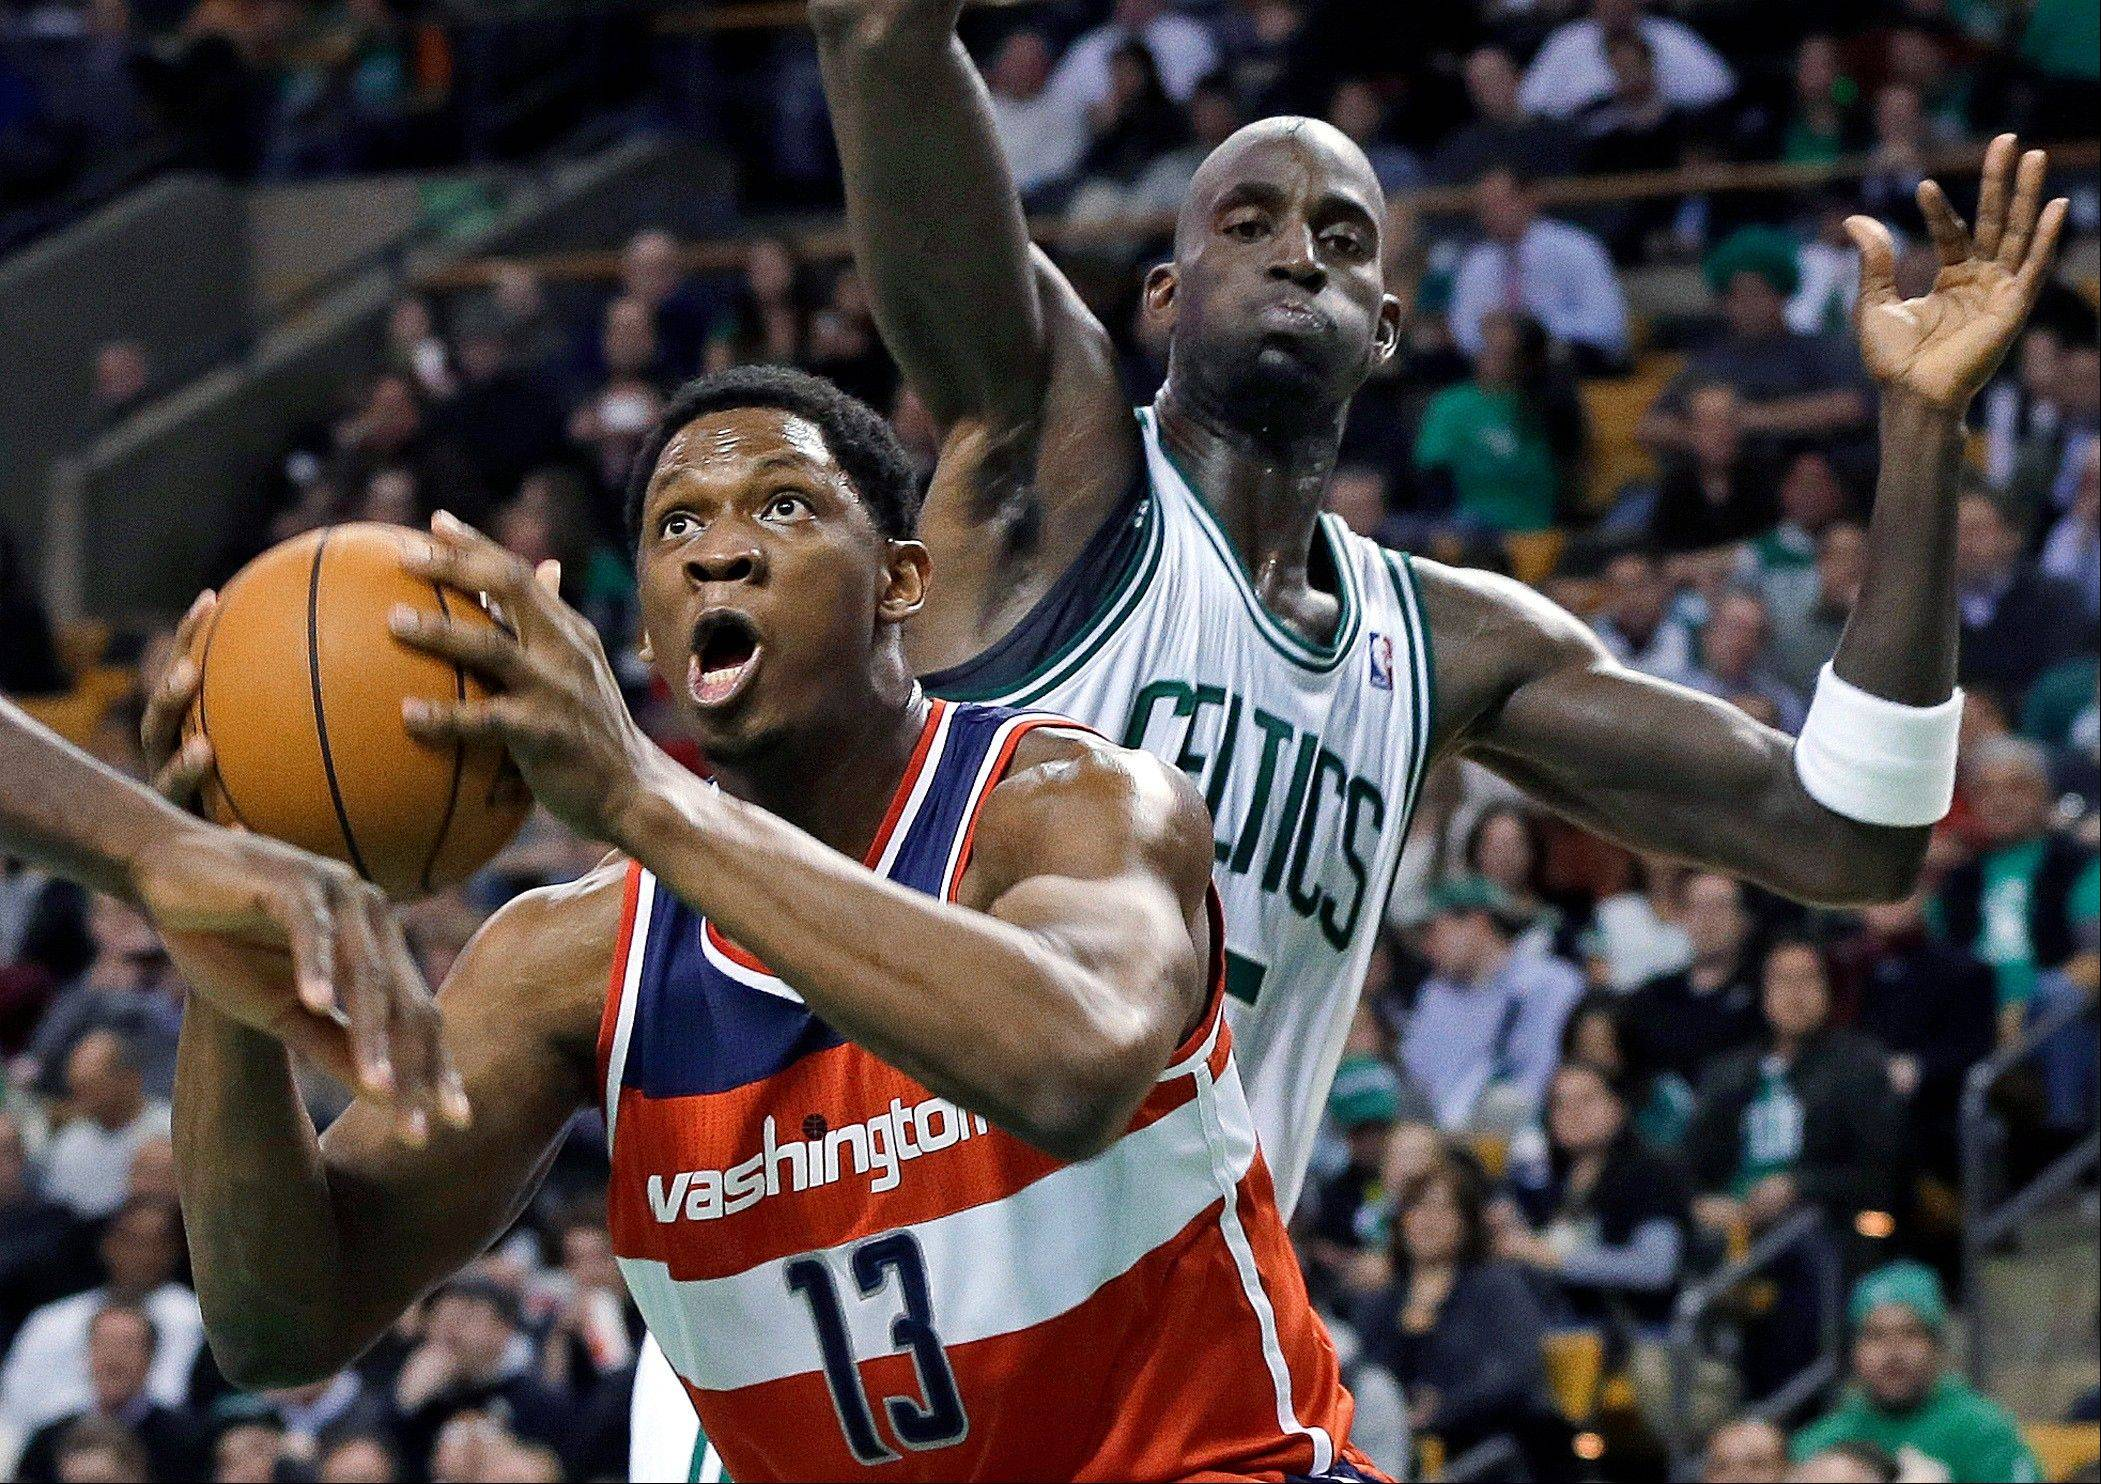 Washington Wizards forward Kevin Seraphin (13) drives to the basket past Boston Celtics forward Kevin Garnett Wednesday during the first half in Boston.